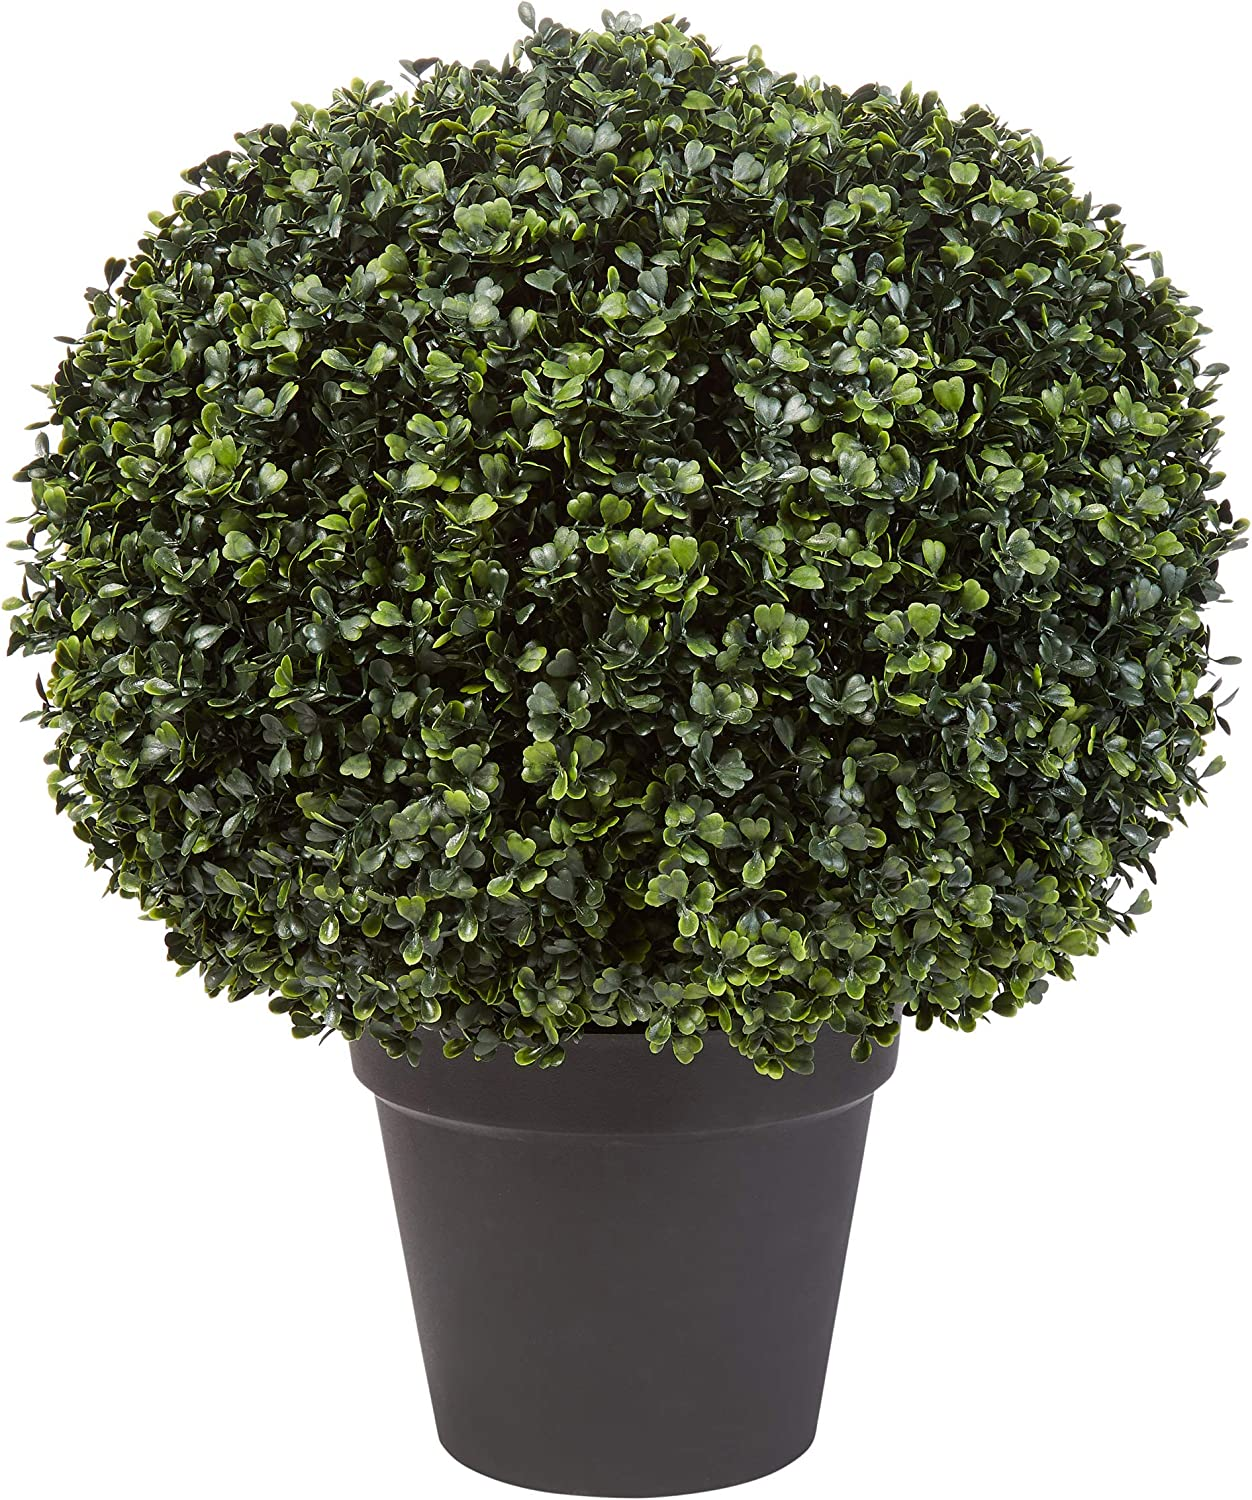 "Home Pure Garden Faux Boxwood– Realistic Plastic Decorative Topiary Arrangement and Weighted Pot for Indoor or Outdoor Office (23"" H x 18"" W)"